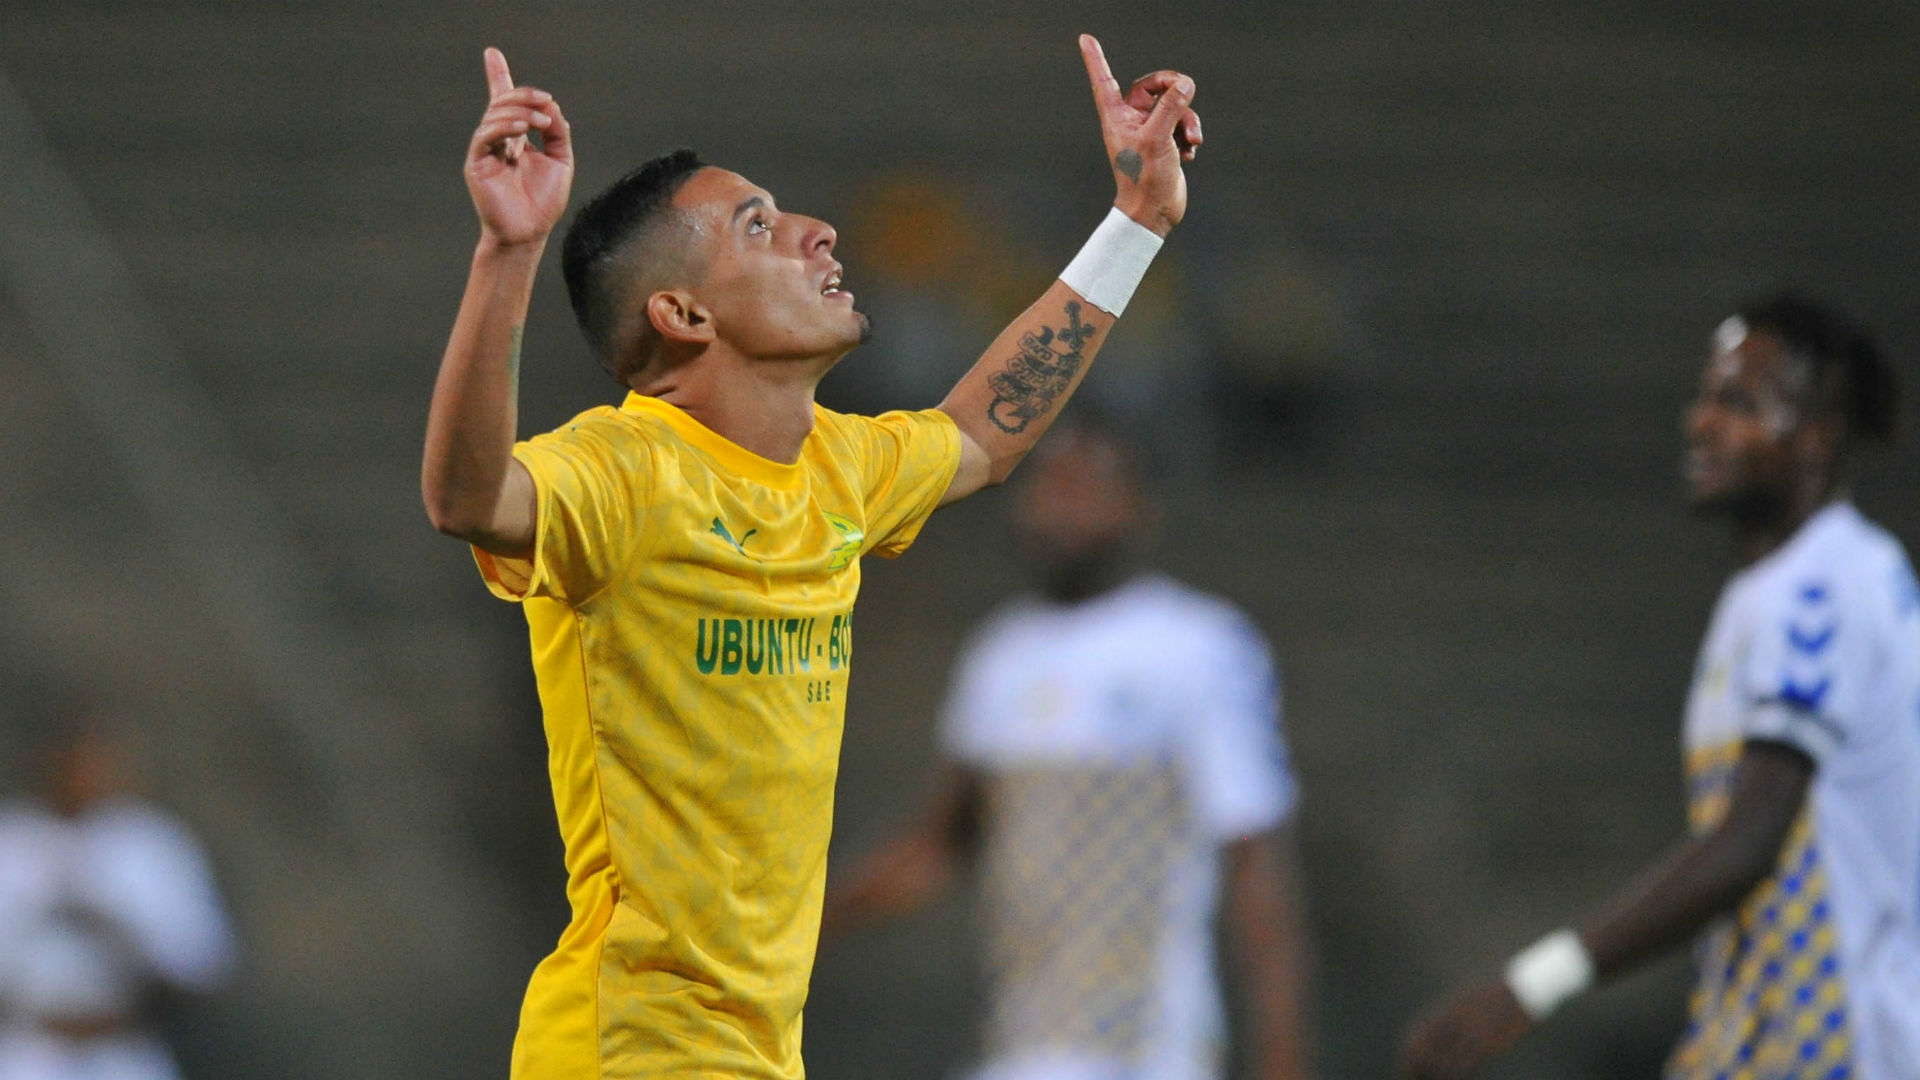 Nedbank Cup: Possible replacements for Sirino ahead of Mamelodi Sundowns and Bidvest Wits clash